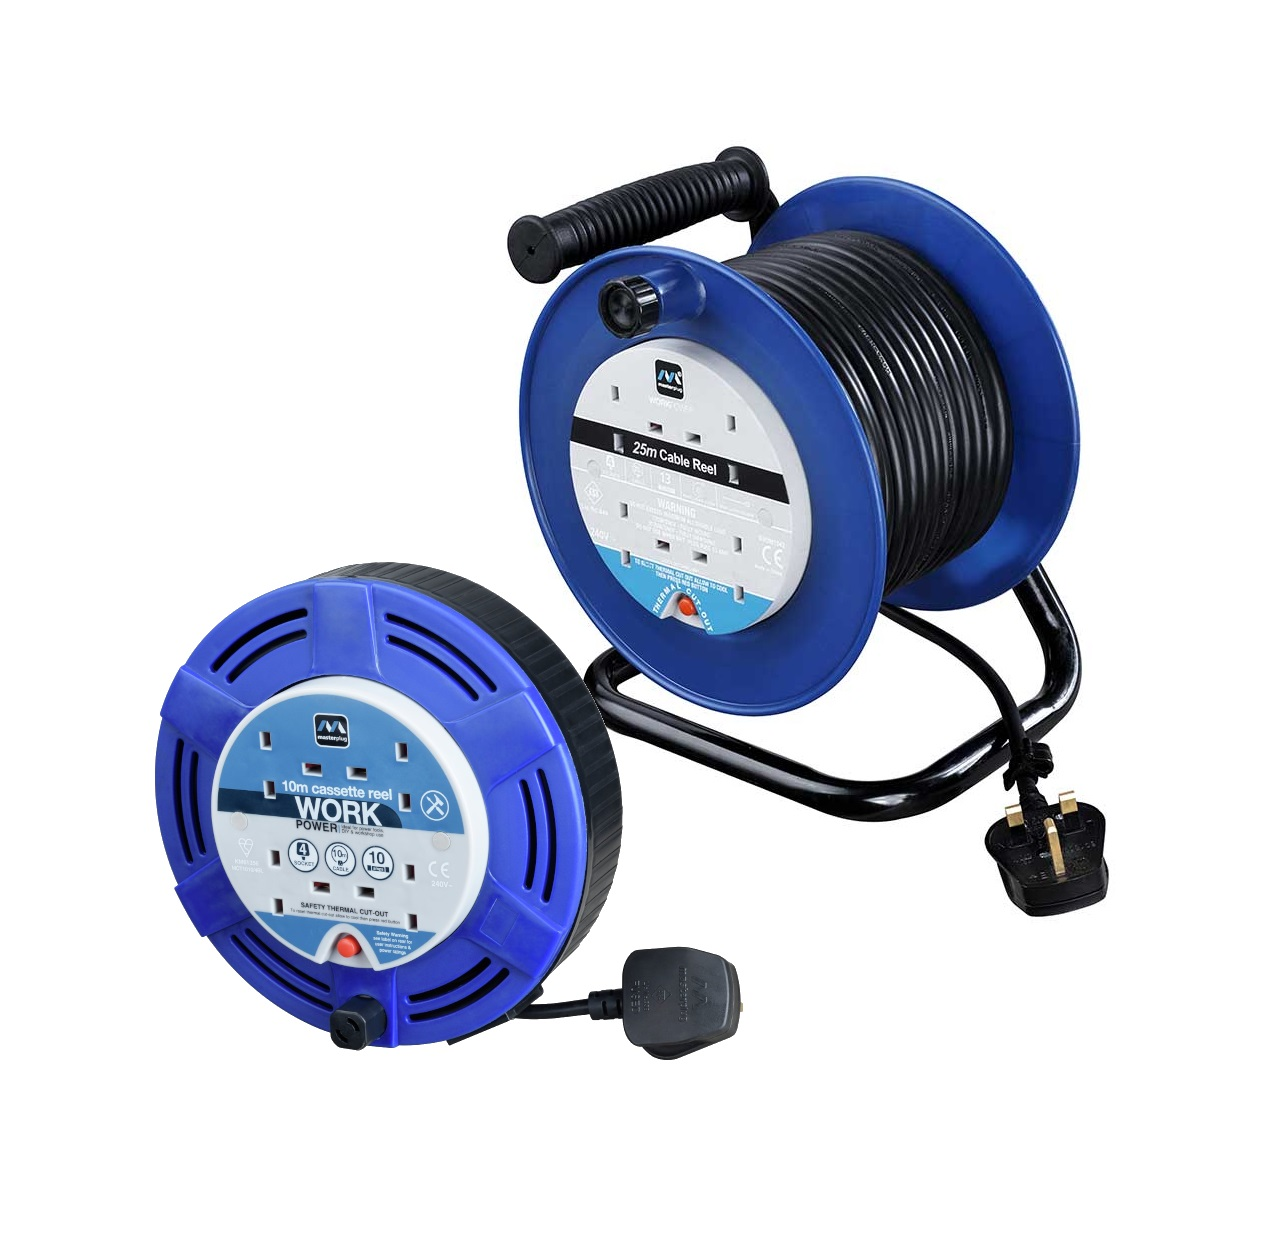 240v Cable Reels